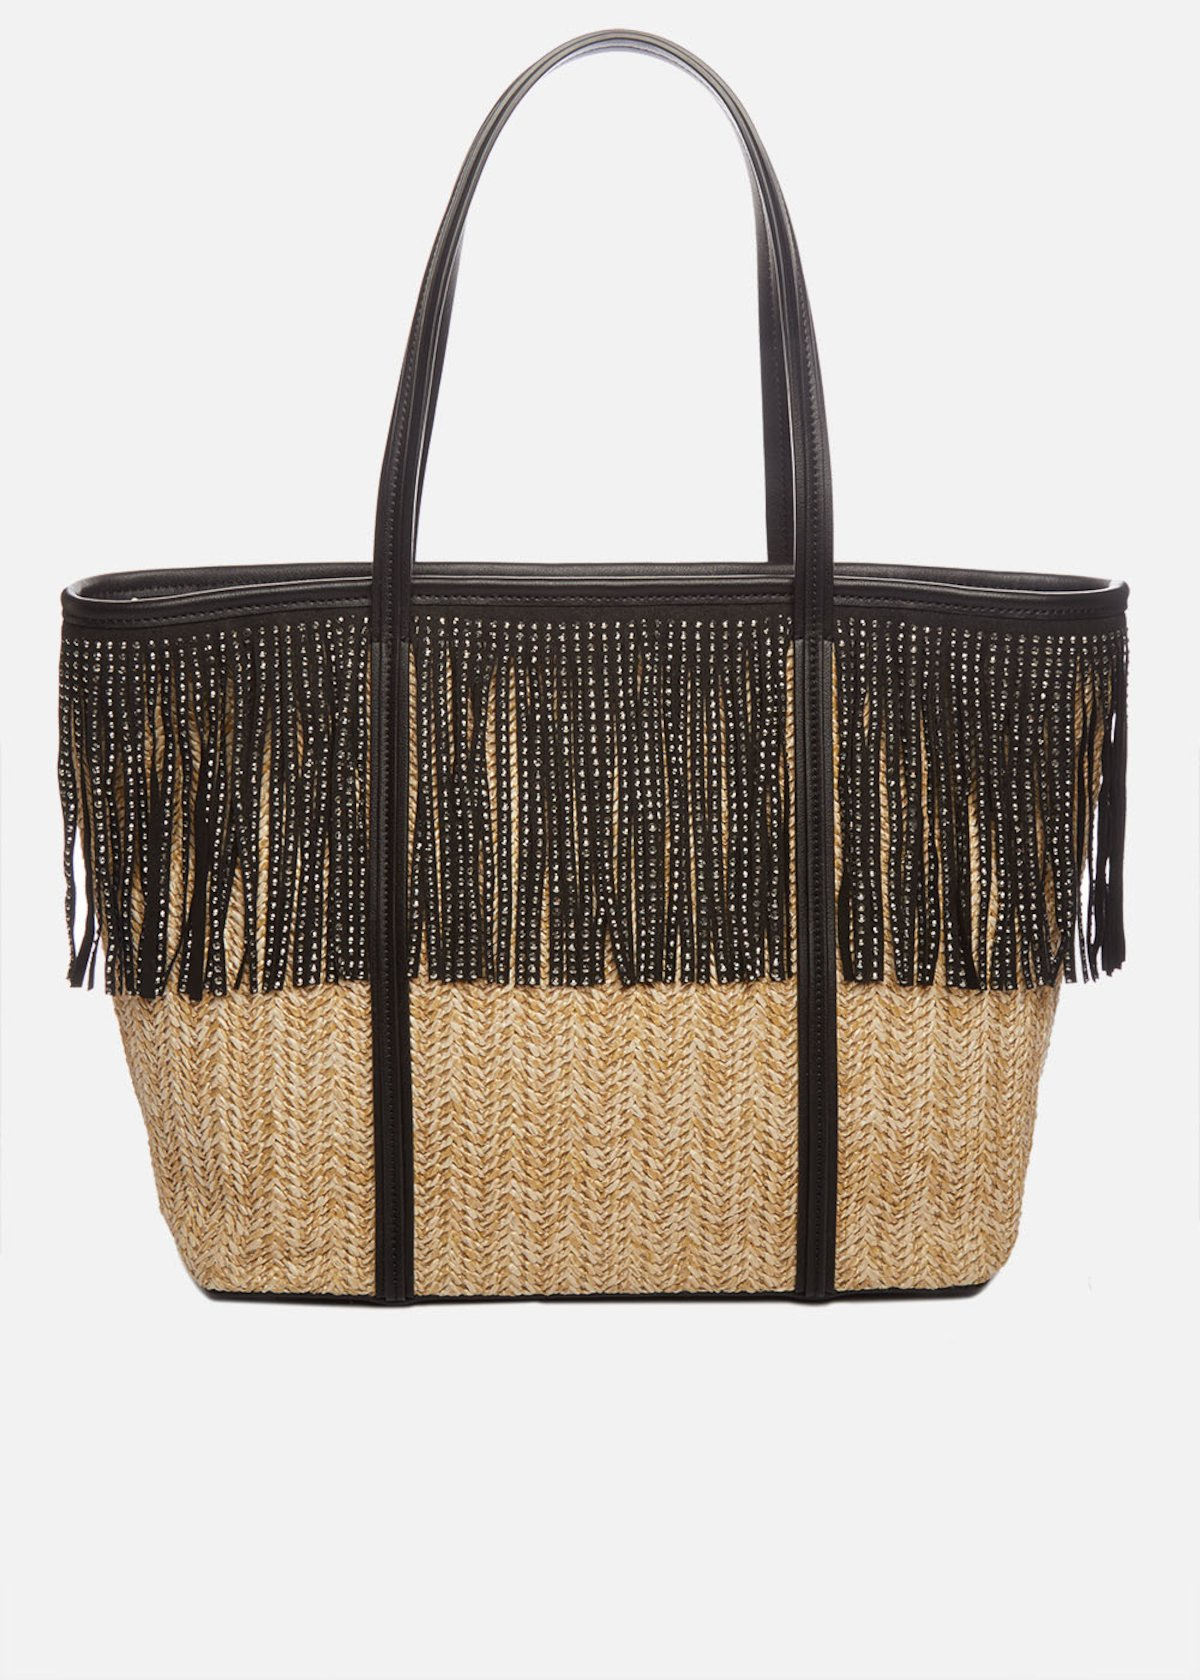 Bradley Shopping bag of raffia with rhinestone fringes and removable shoulder strap - Beige / Black